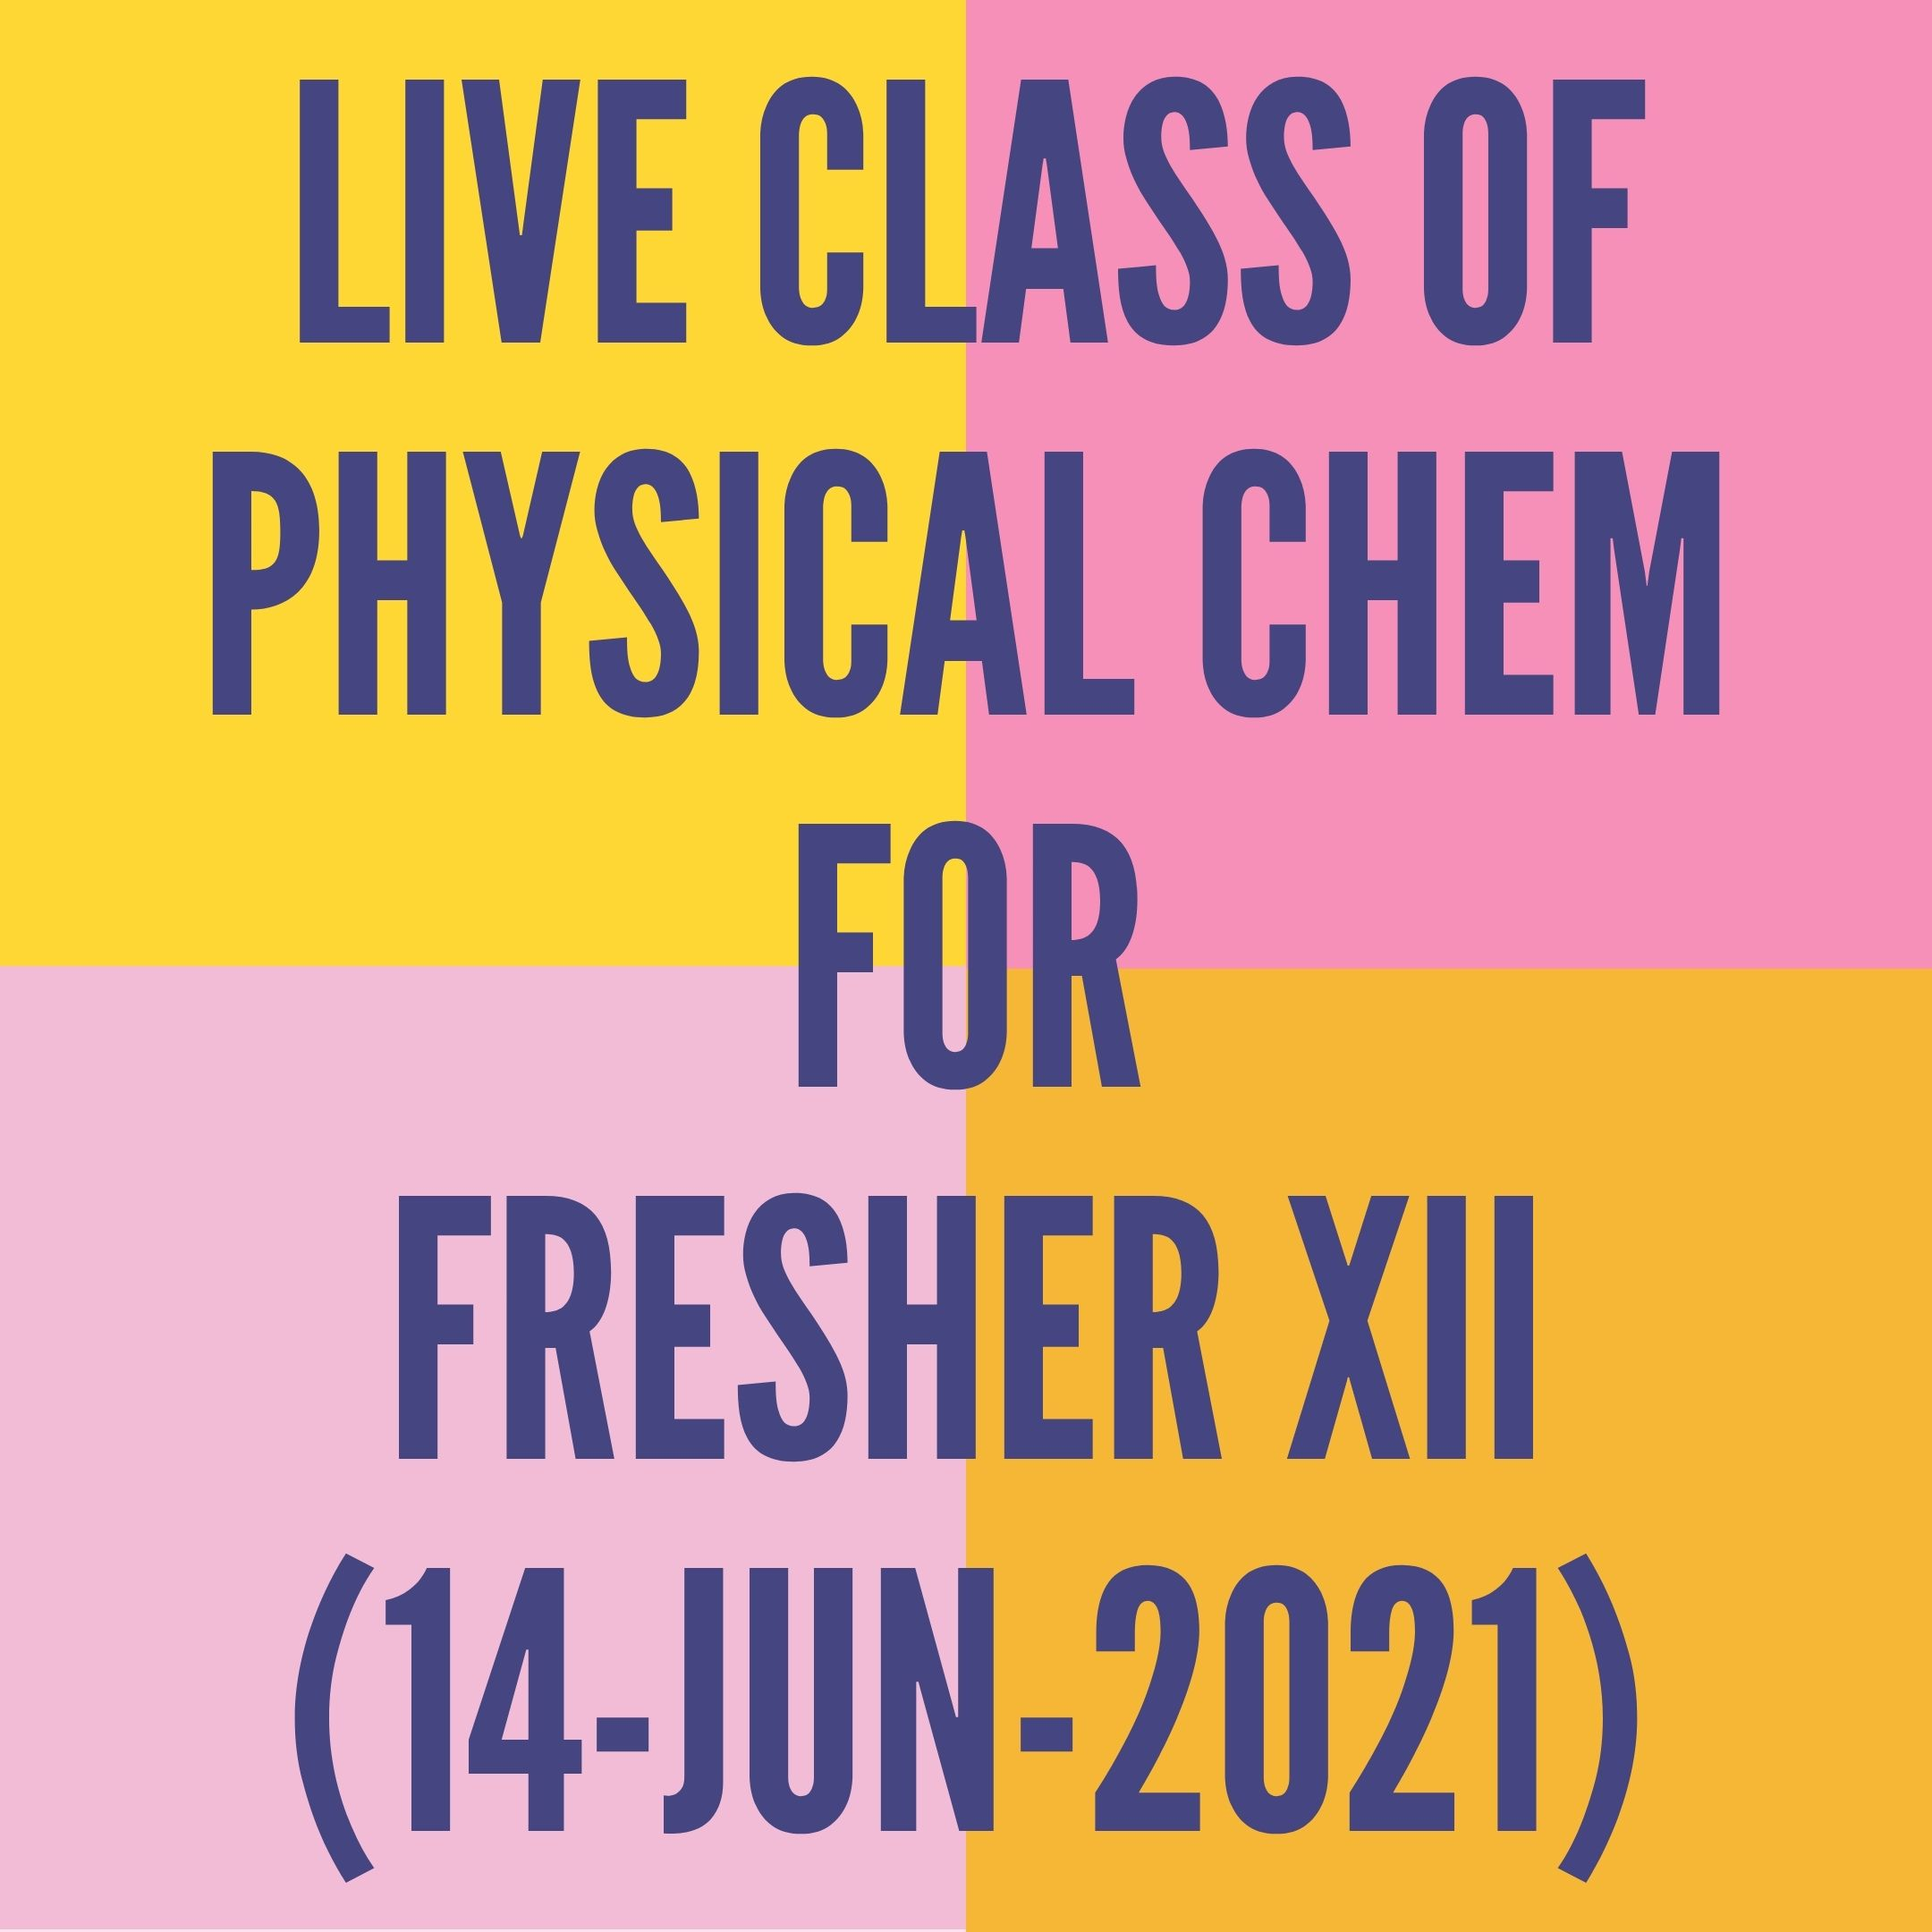 LIVE CLASS OF PHYSICAL CHEMISTRY FOR FRESHER XII (14-JUN-2021) SOLUTIONS